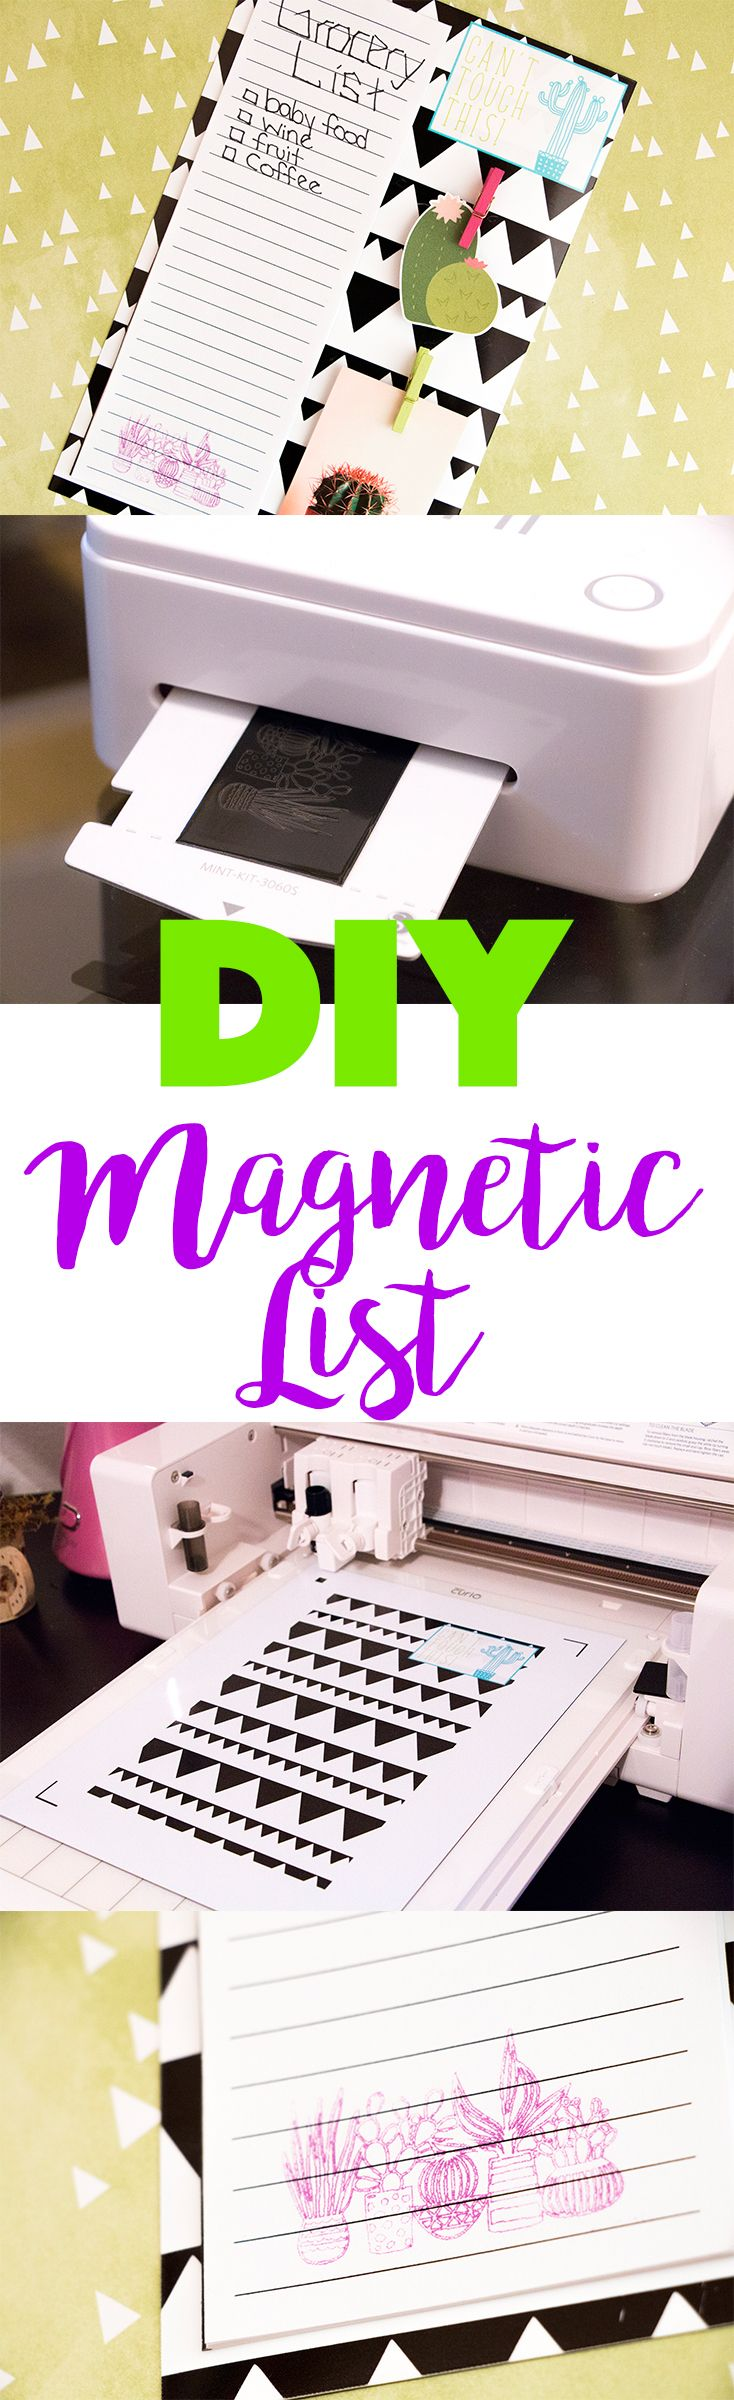 Make your own magnetic grocery list  using printable magnetic paper and your Mint!